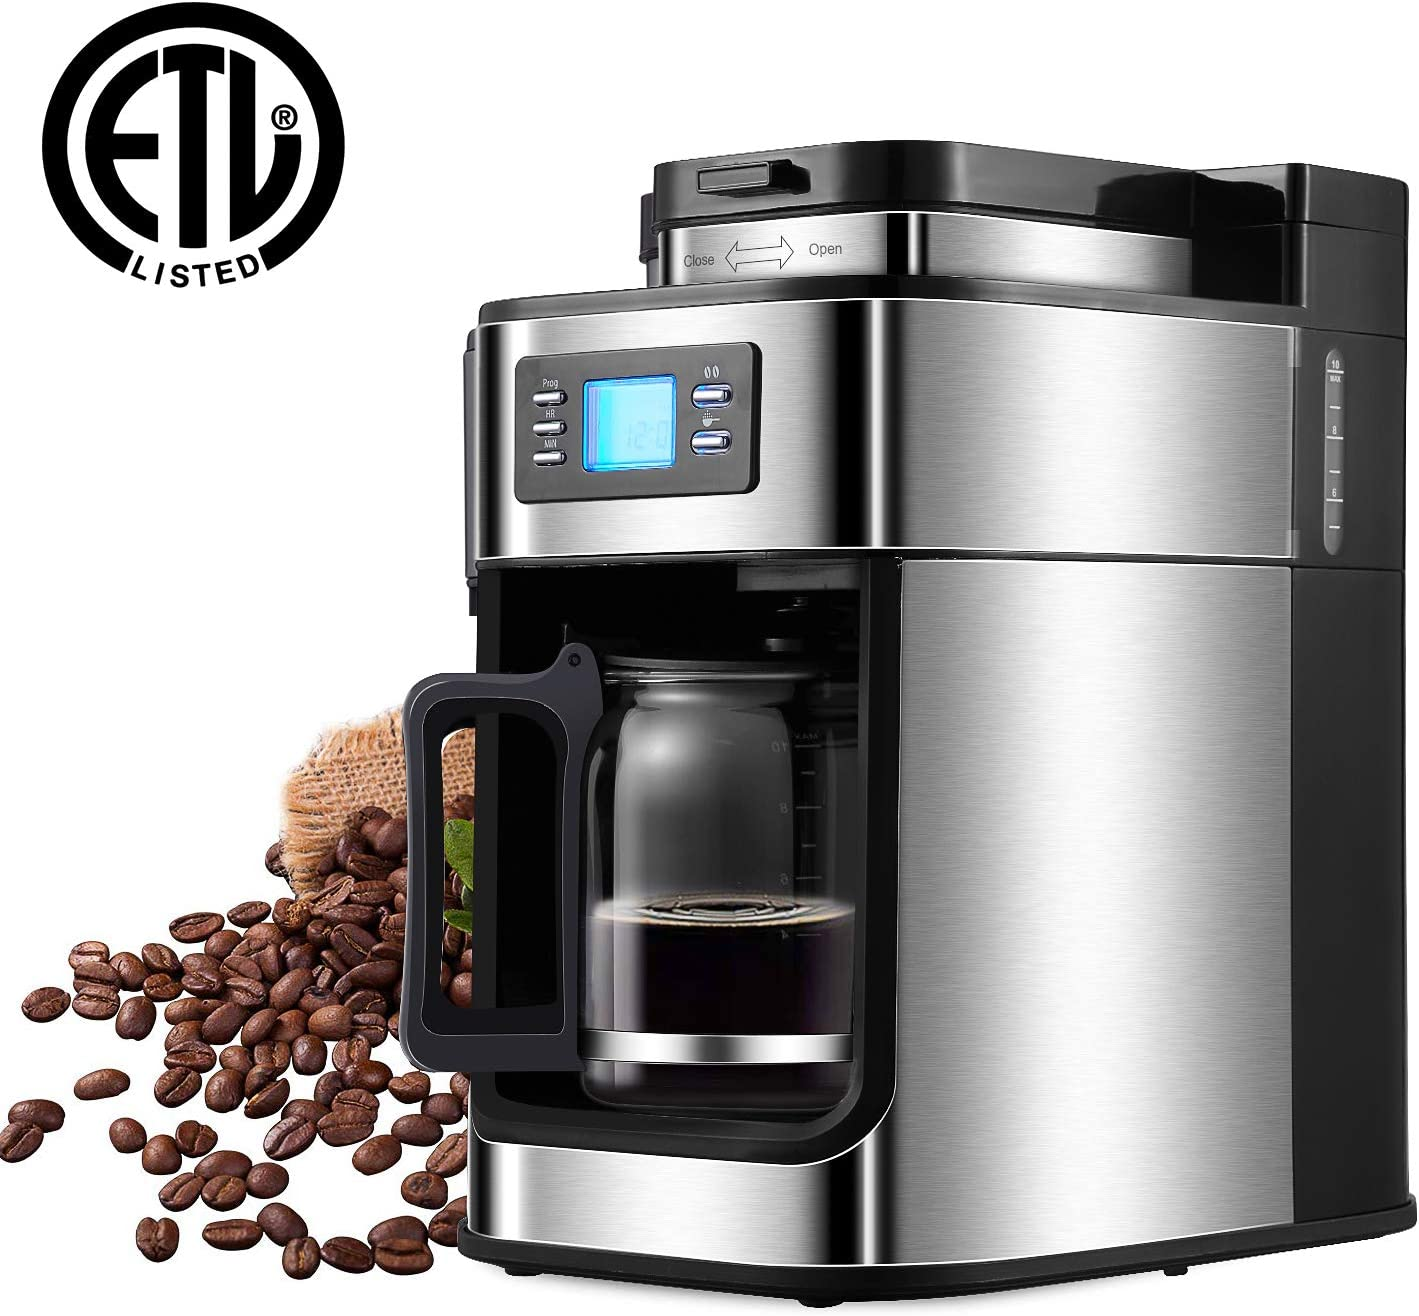 Coffee Maker,5 Cup Sizes Programmable Drip Coffee Maker with Coffee Pot, Timer LED Display Automatic Coffee maker Machine Brewer for Office Kitchen